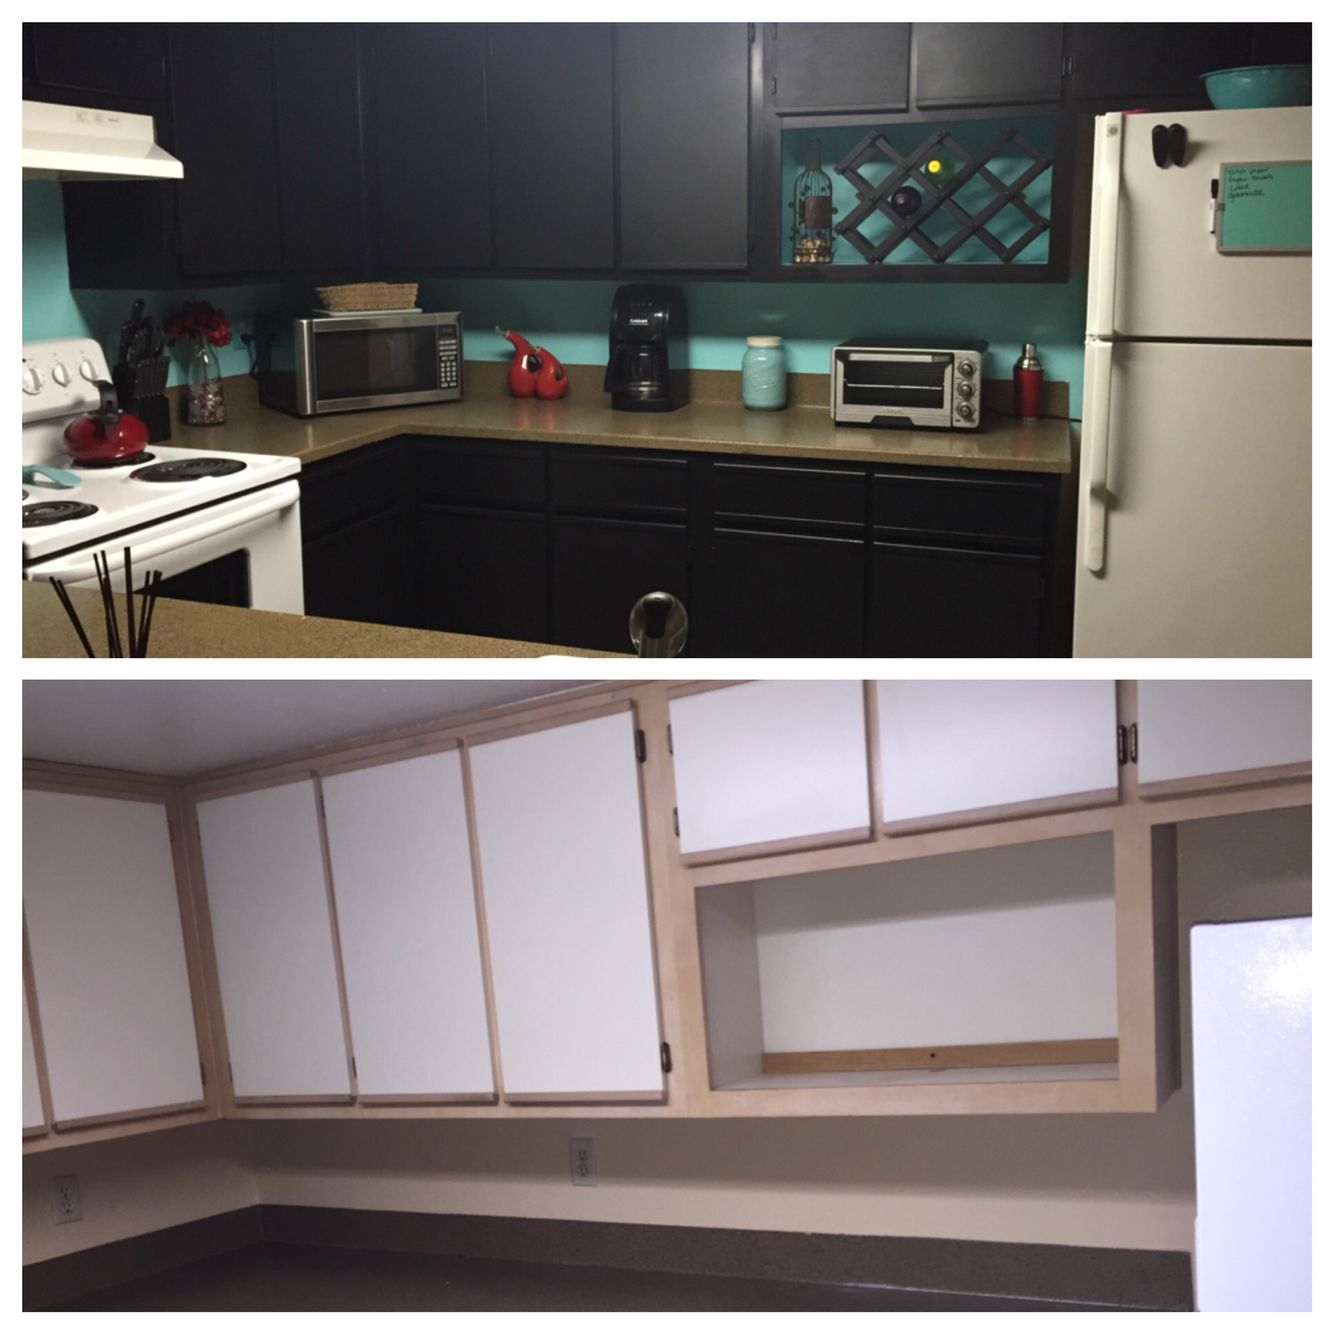 40 Brilliant Under The Stairs Employment Ideas: Before And After With Rustoleum Cabinet Kit